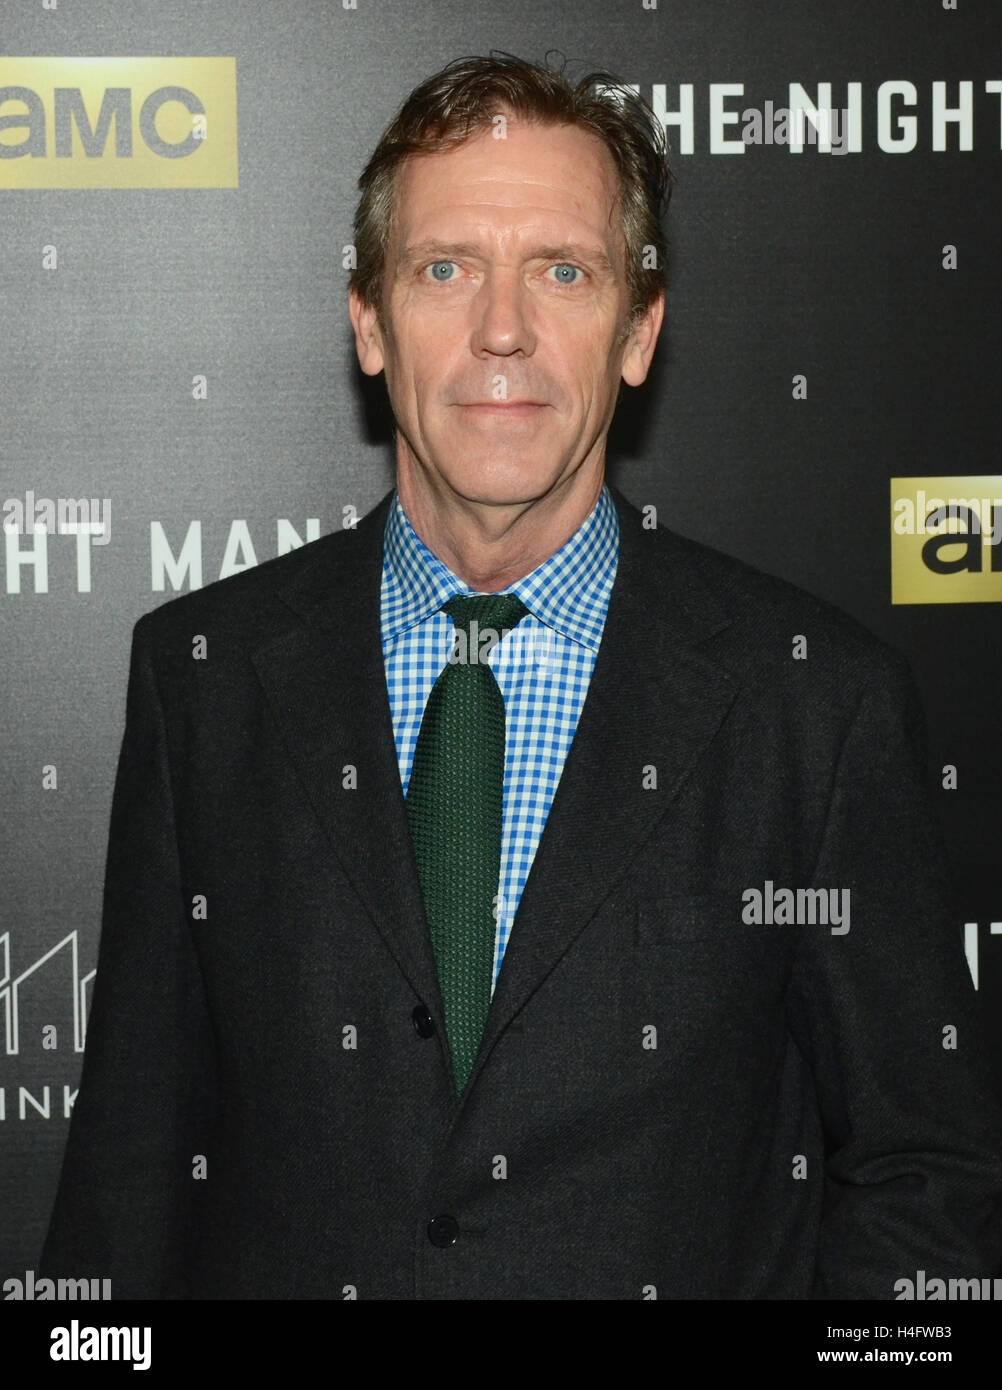 Hugh Laurie arrives for the Premiere Of AMC's 'The Night Manager' held at DGA Theater on April 5, 2016 - Stock Image